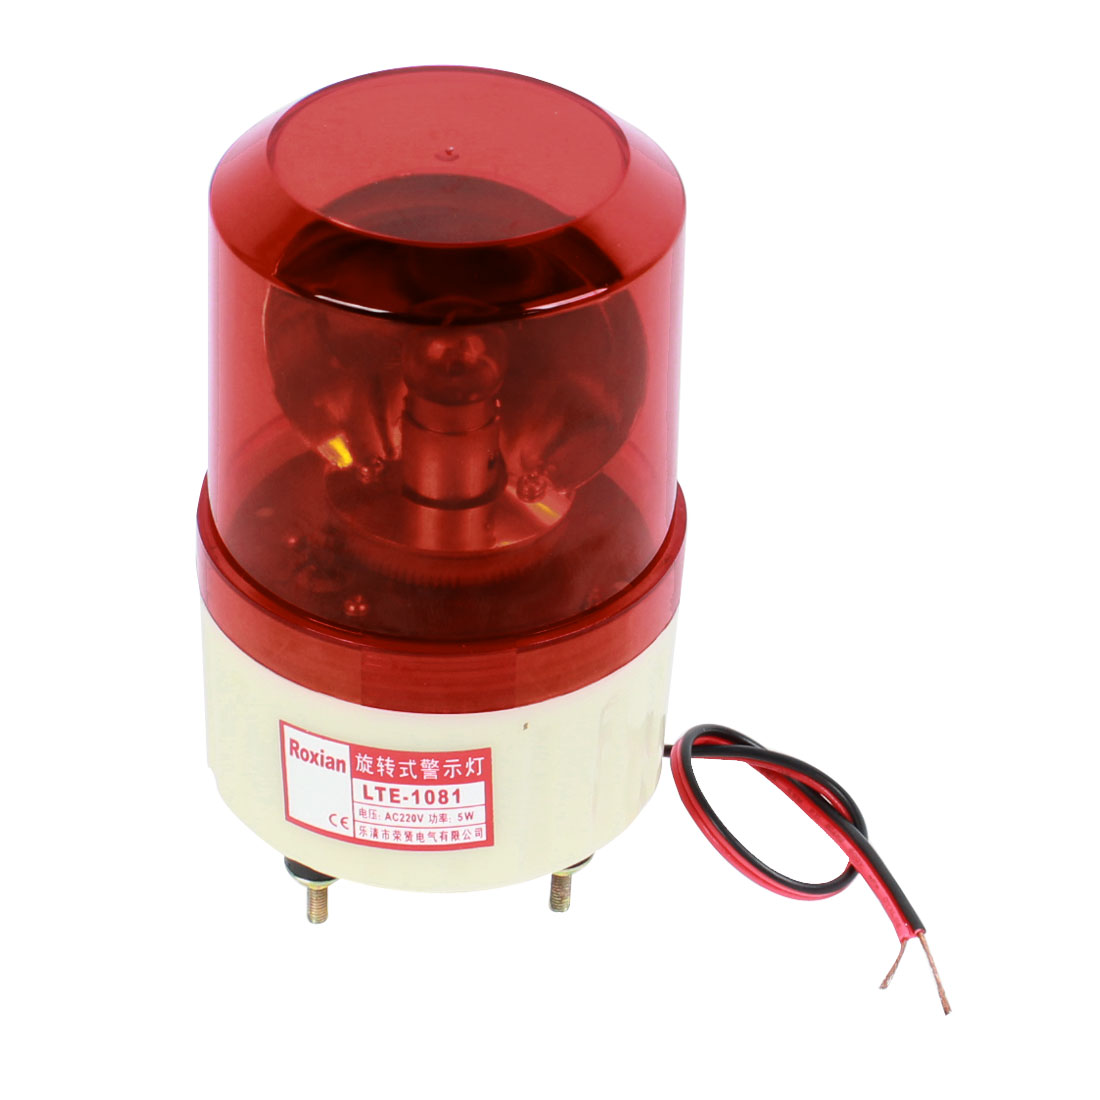 AC 220V 5W Flash Strobe Rotary Signal Warning Emergency Industrial Light Lamp Red LTE-1081